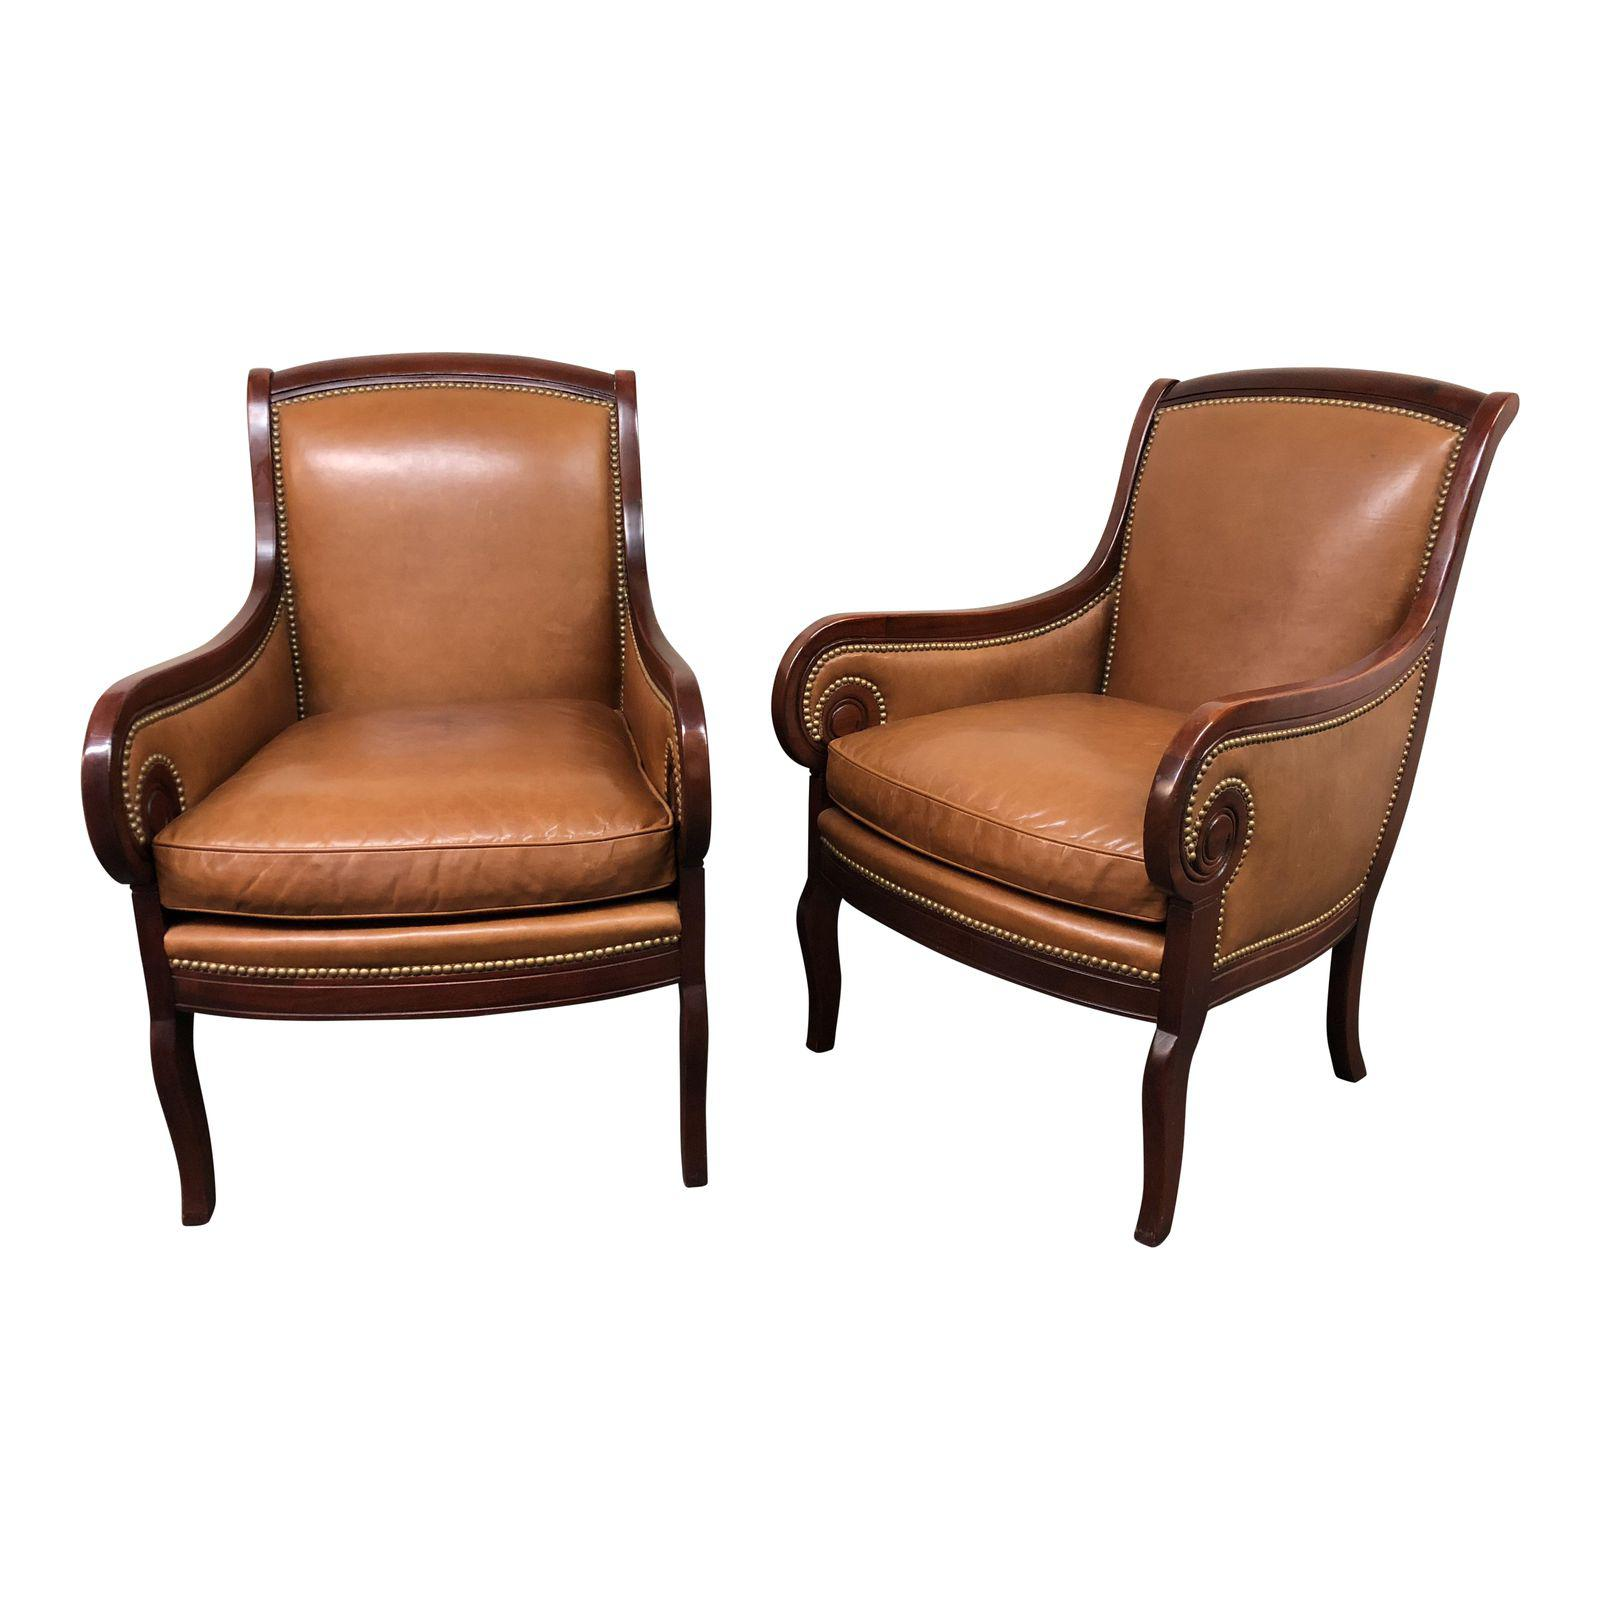 Hickory Chair Company Charles Side Chairs U2013 A Pair. Original Price:  $6,900.00